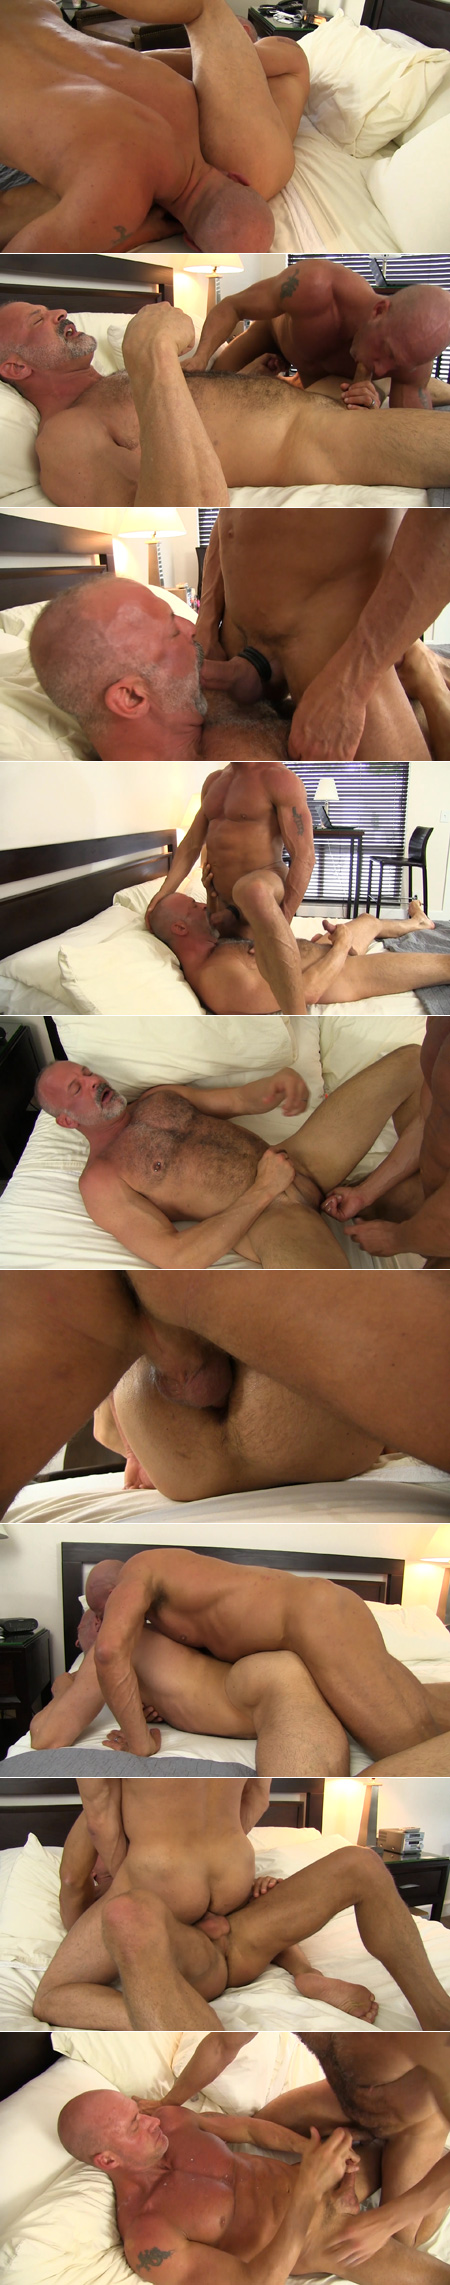 Daddy muscle bears fucking bareback.